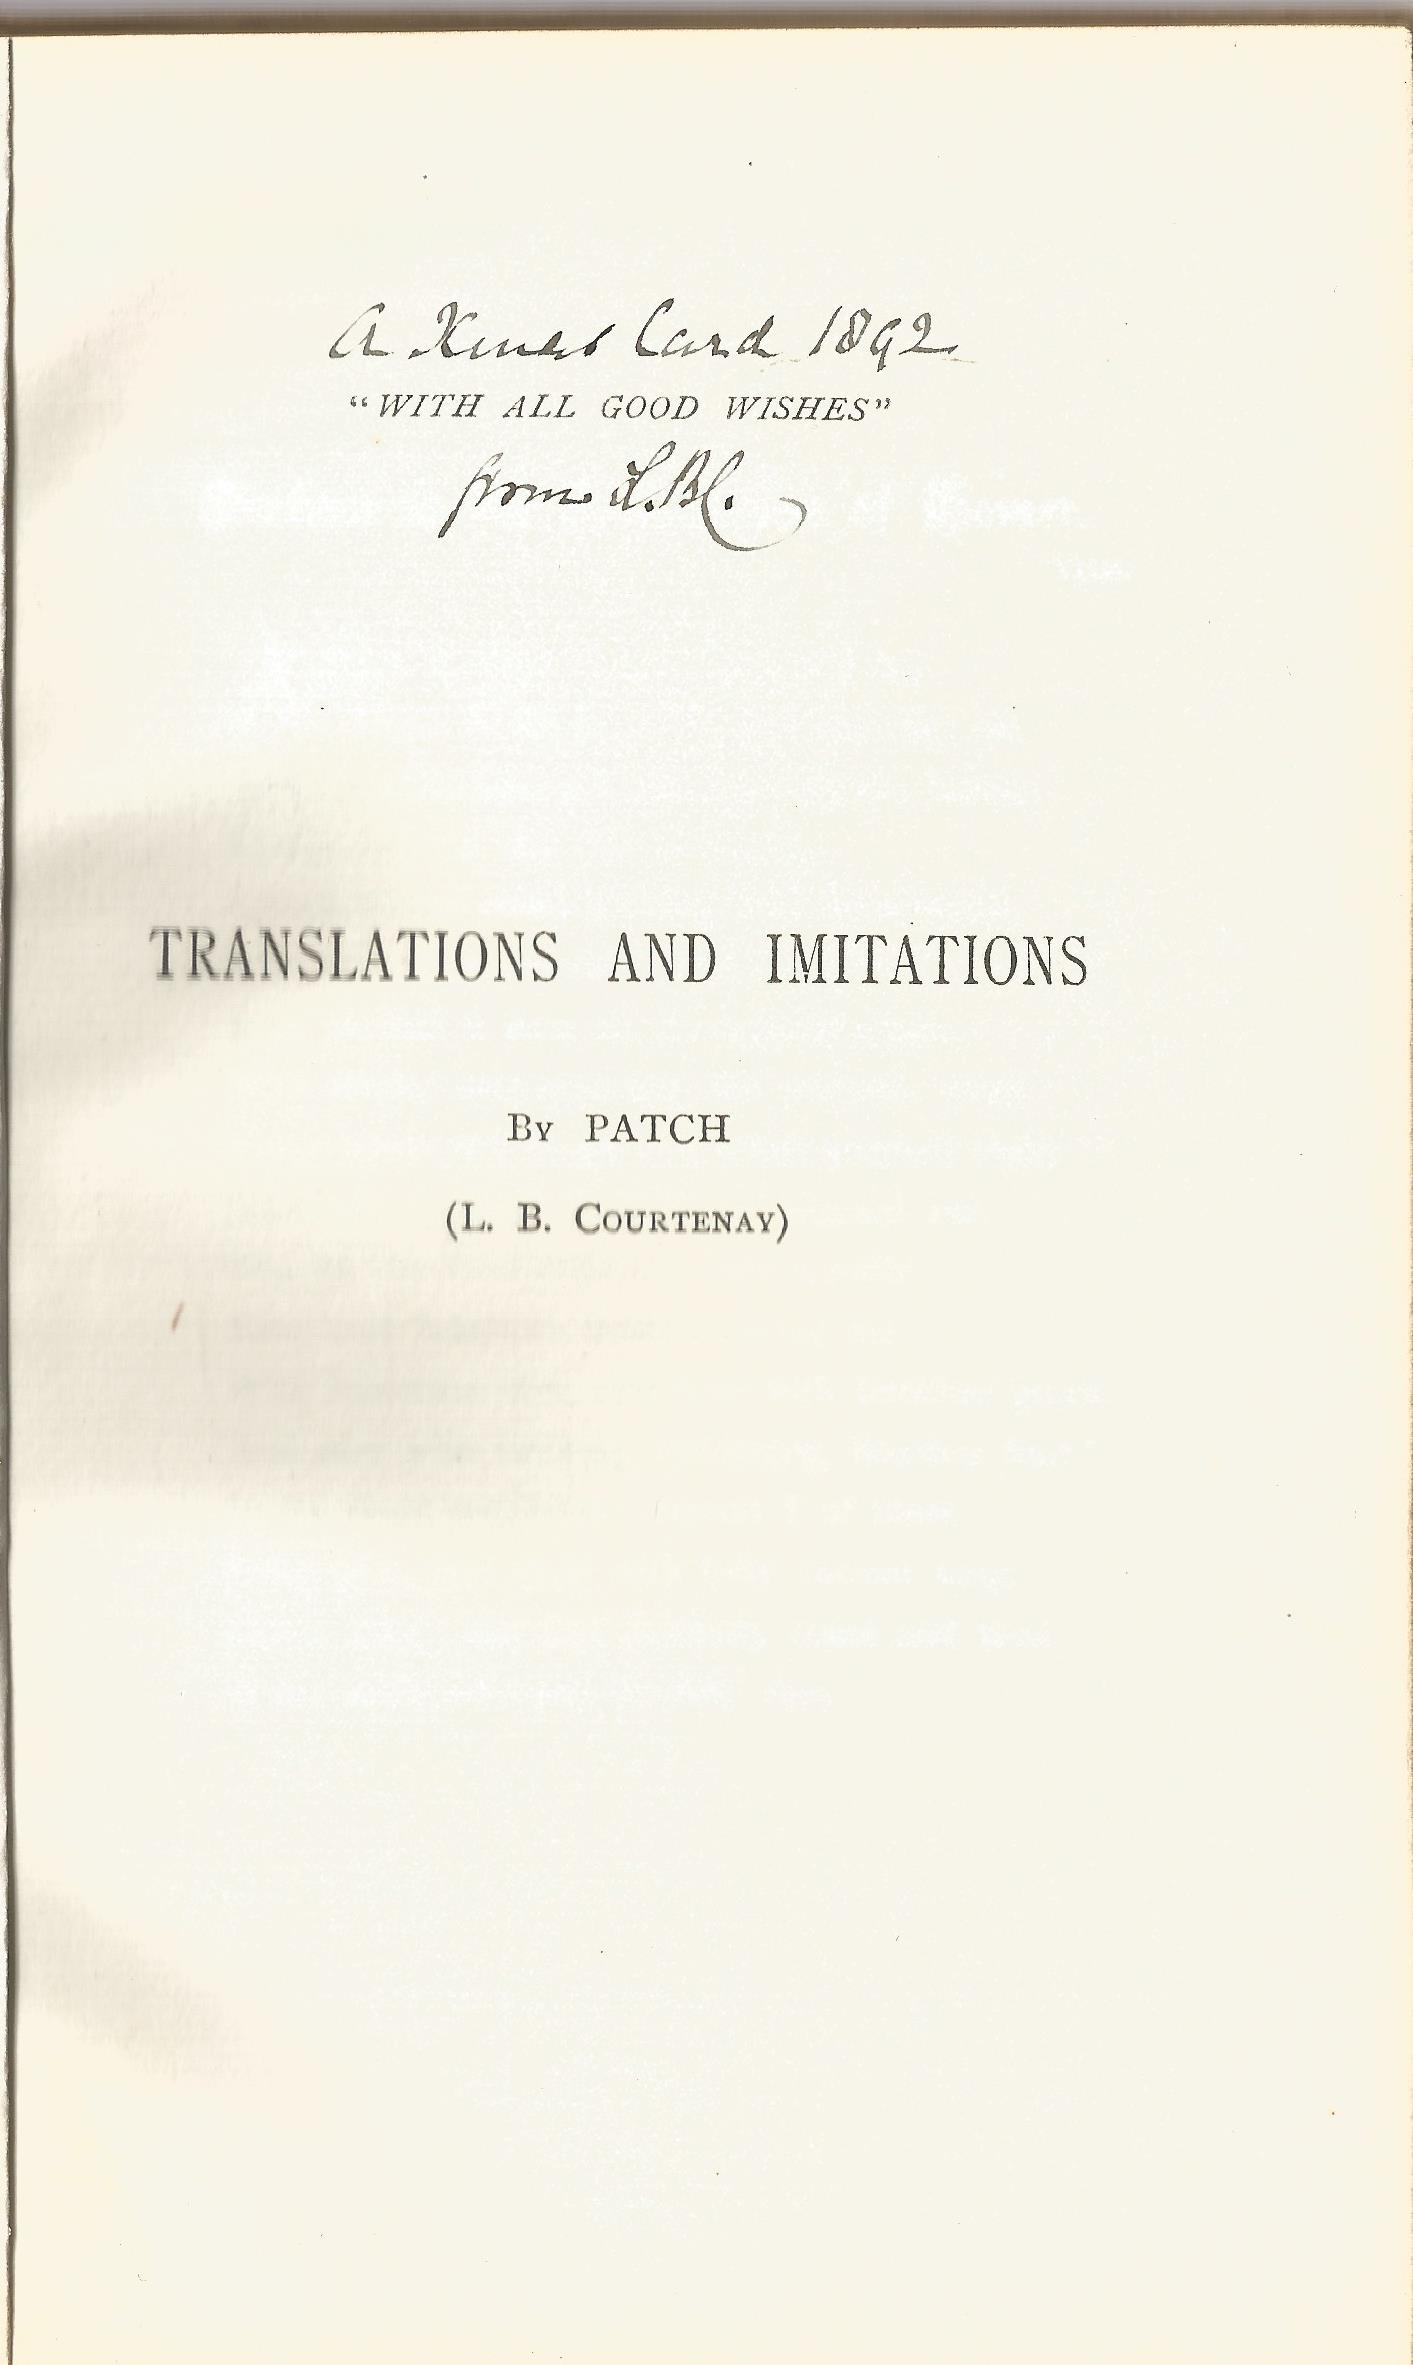 Translations and Imitations by Patch L B Courtney with initialled inscription LBC dated 1892, - Image 2 of 2